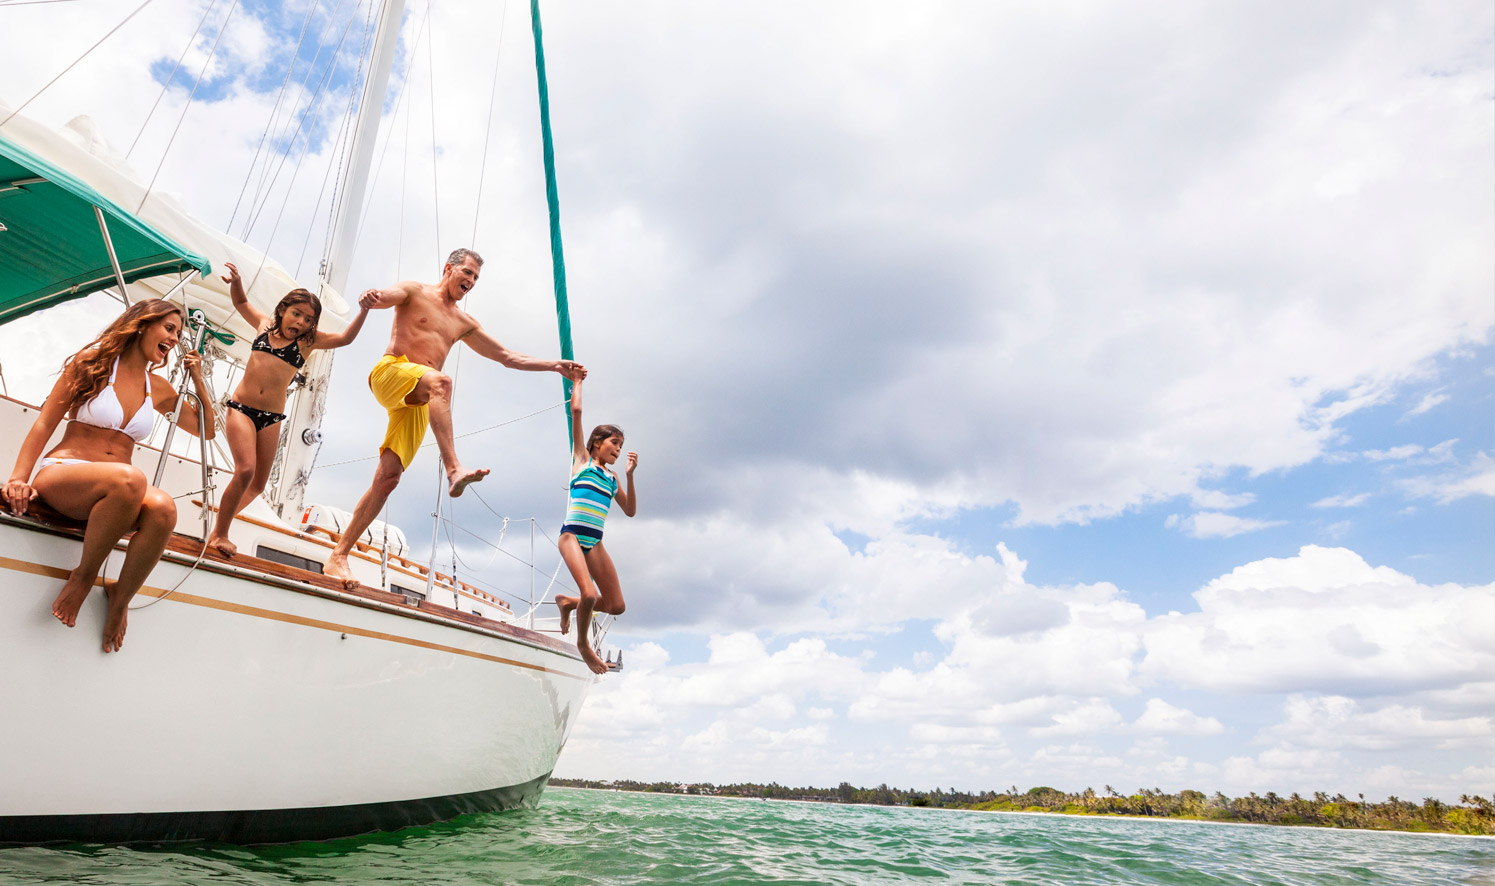 The Best Places to Boat in Naples, Marco Island, Everglades